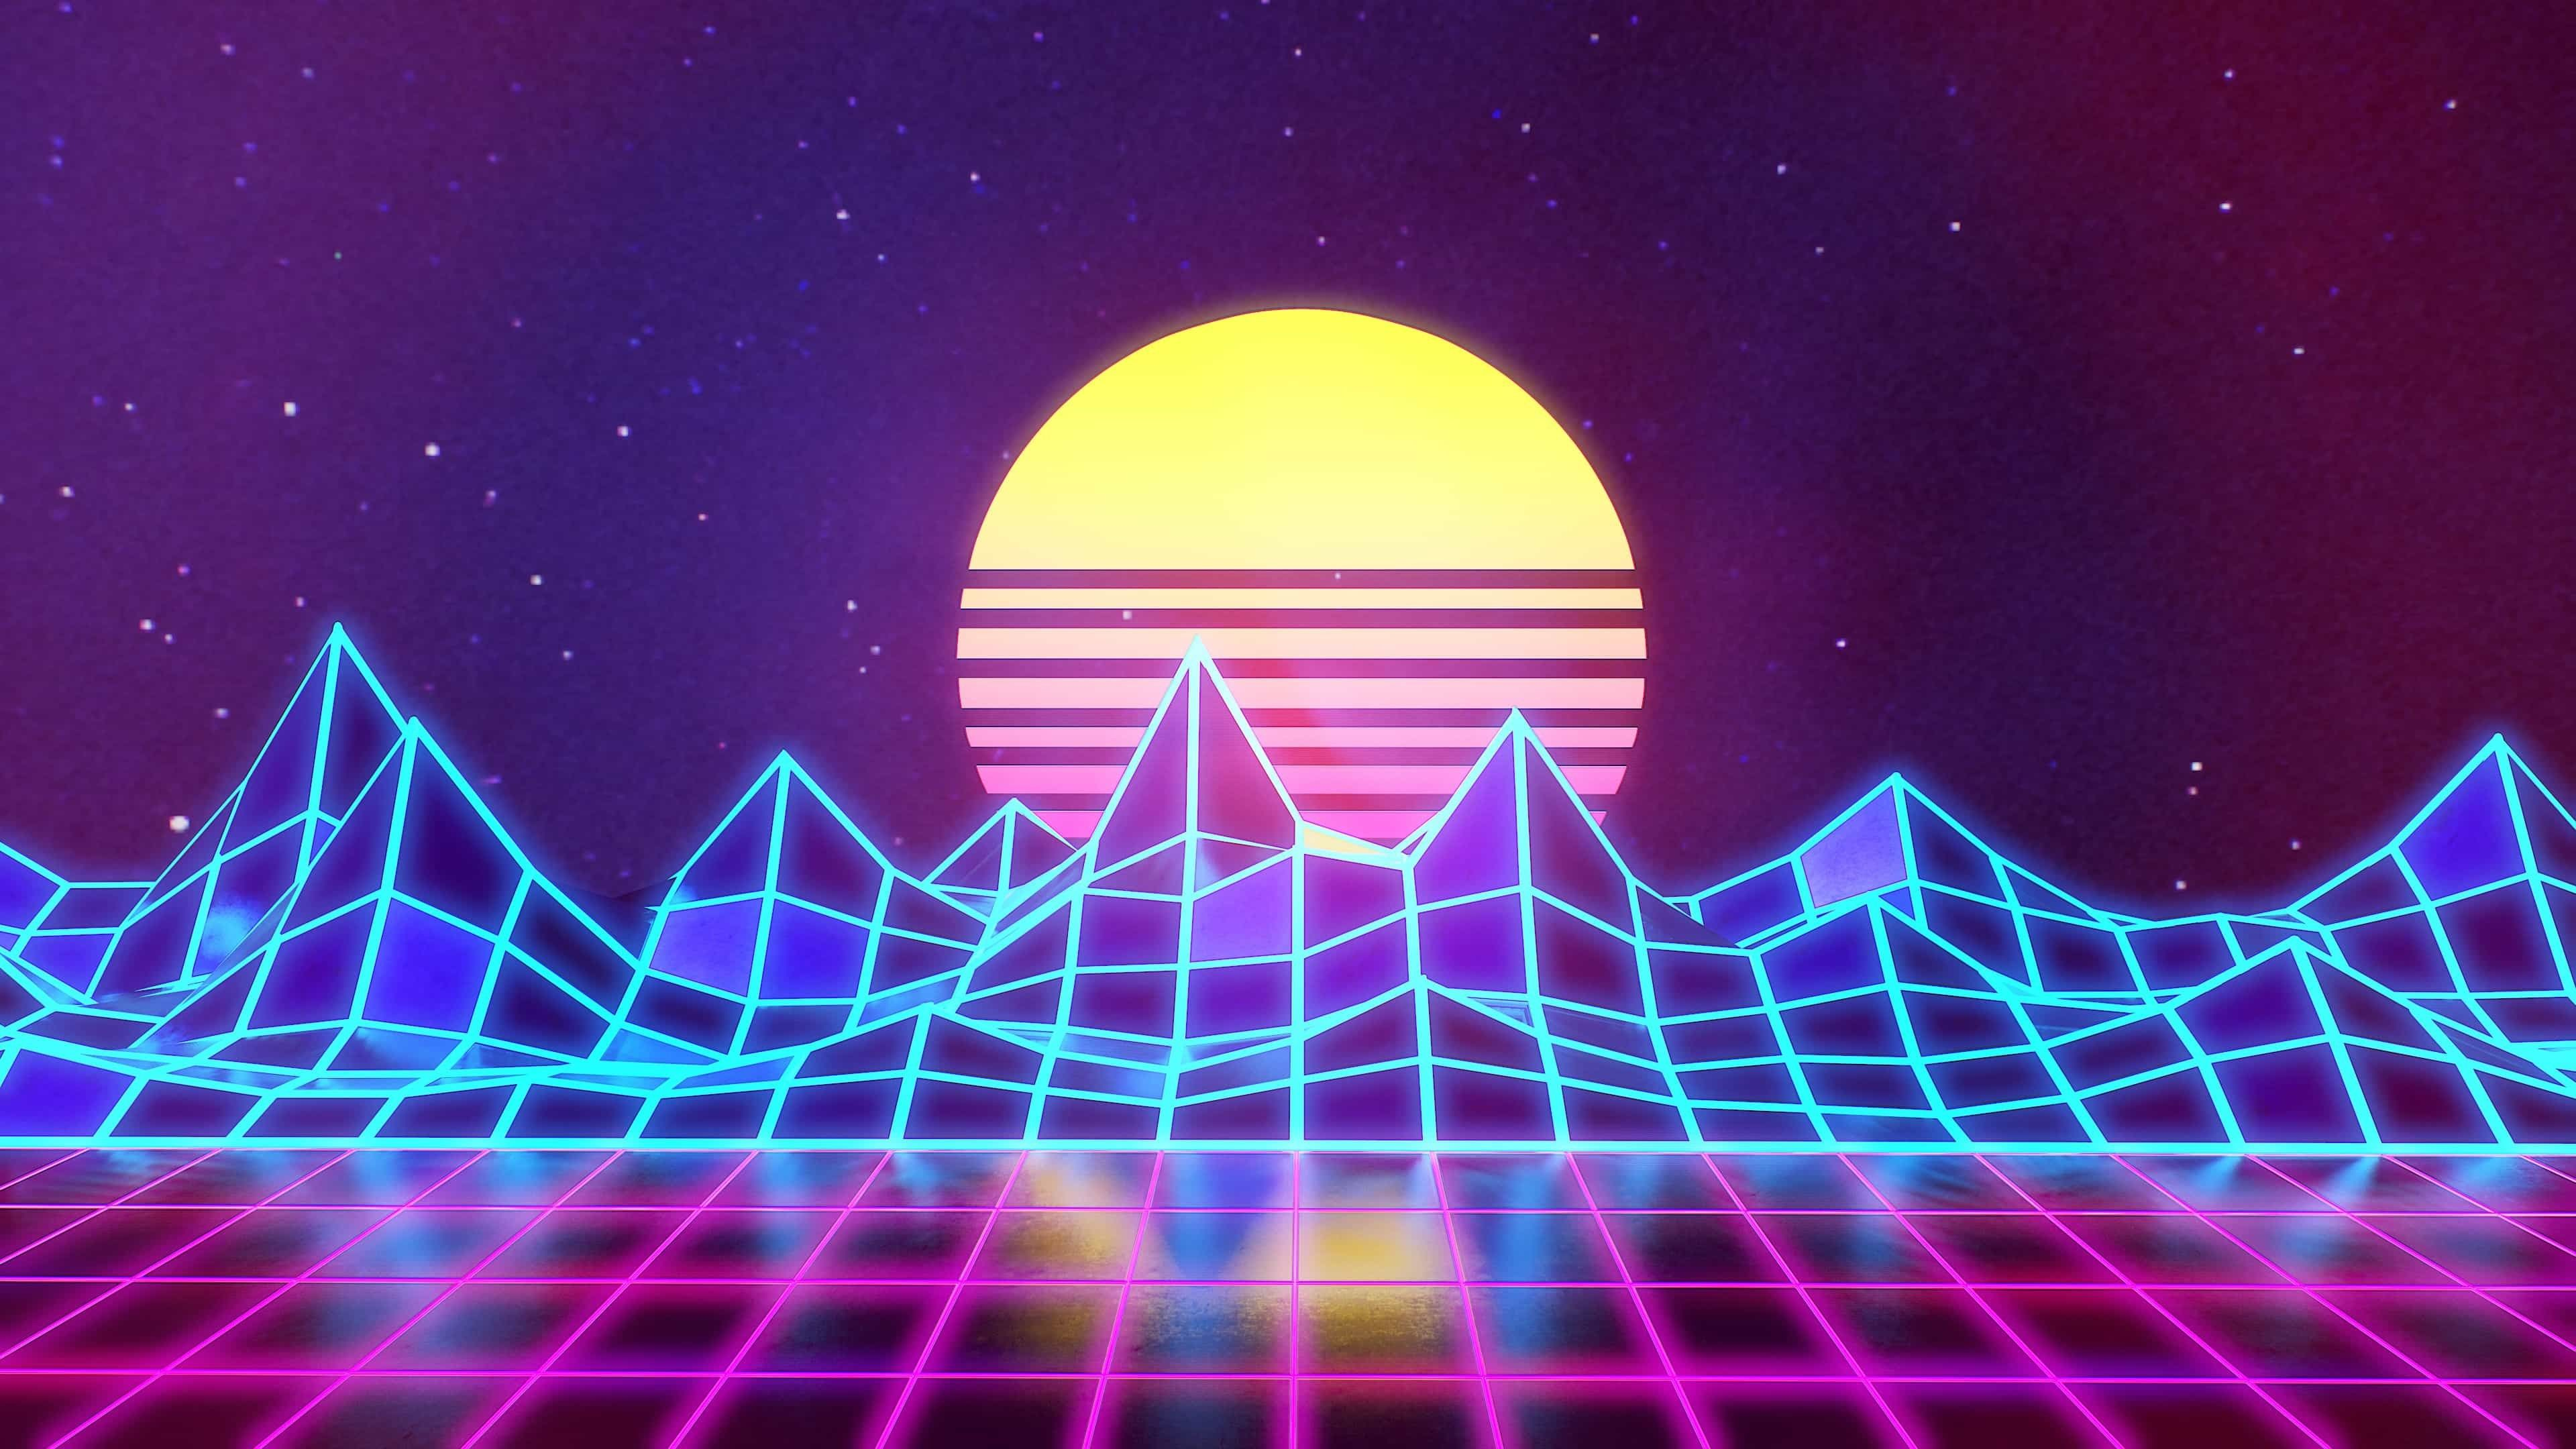 80s Neon Wallpapers Top Free 80s Neon Backgrounds Wallpaperaccess